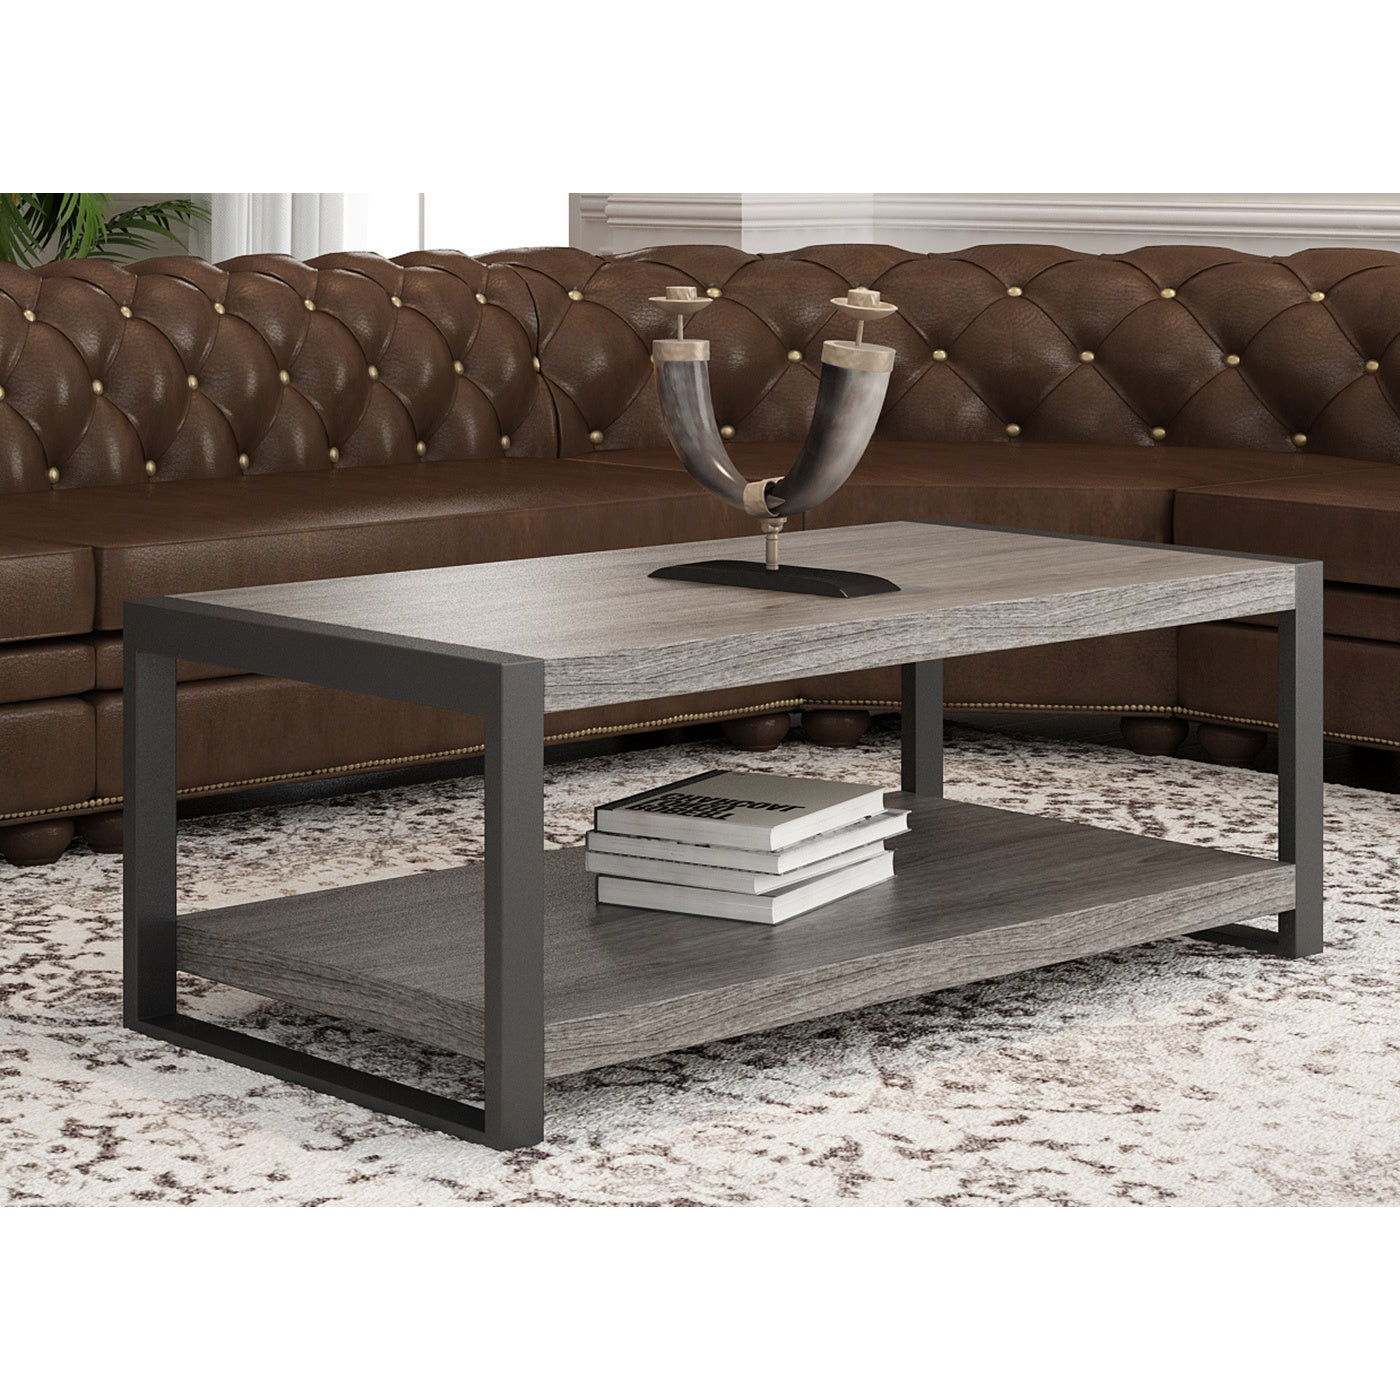 Carbon Loft Hamilton 48 Inch Coffee Table – 48 X 24 X 18H Intended For Current Carbon Loft Hamilton 48 Inch Coffee Tables (View 8 of 20)